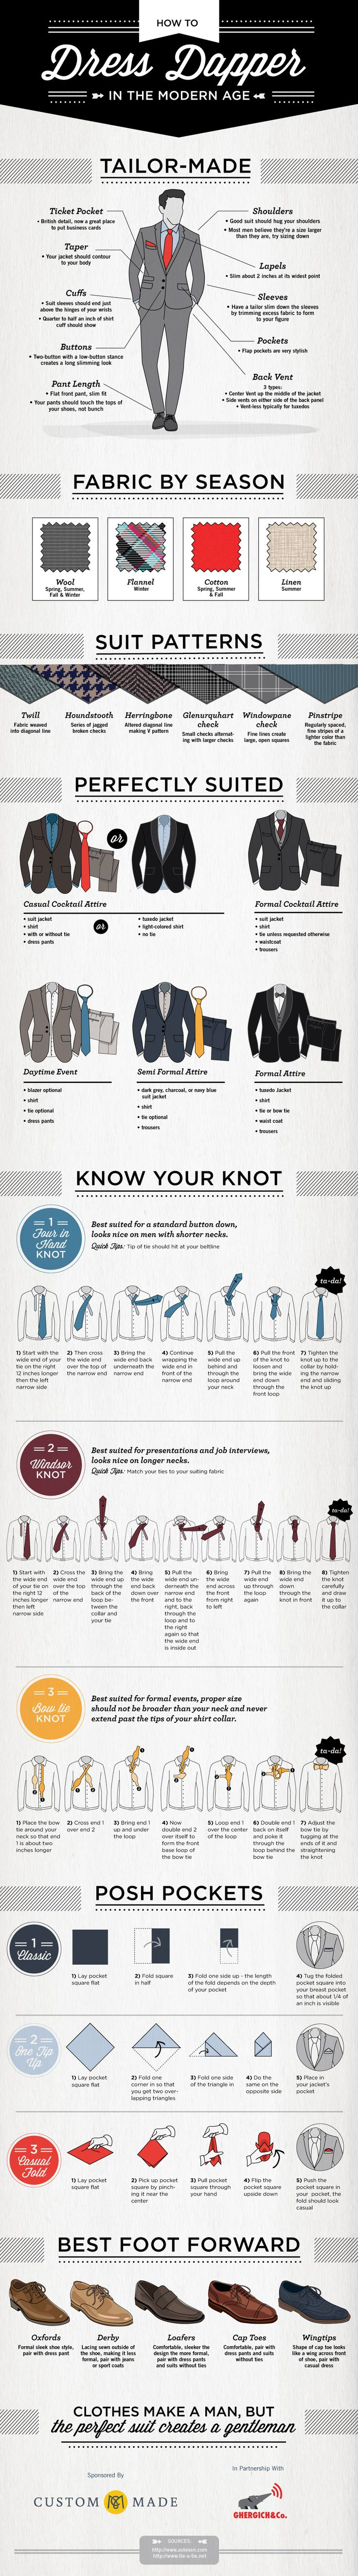 Men's Style: How to dress dapper in the modern age Infographic by CustomMade